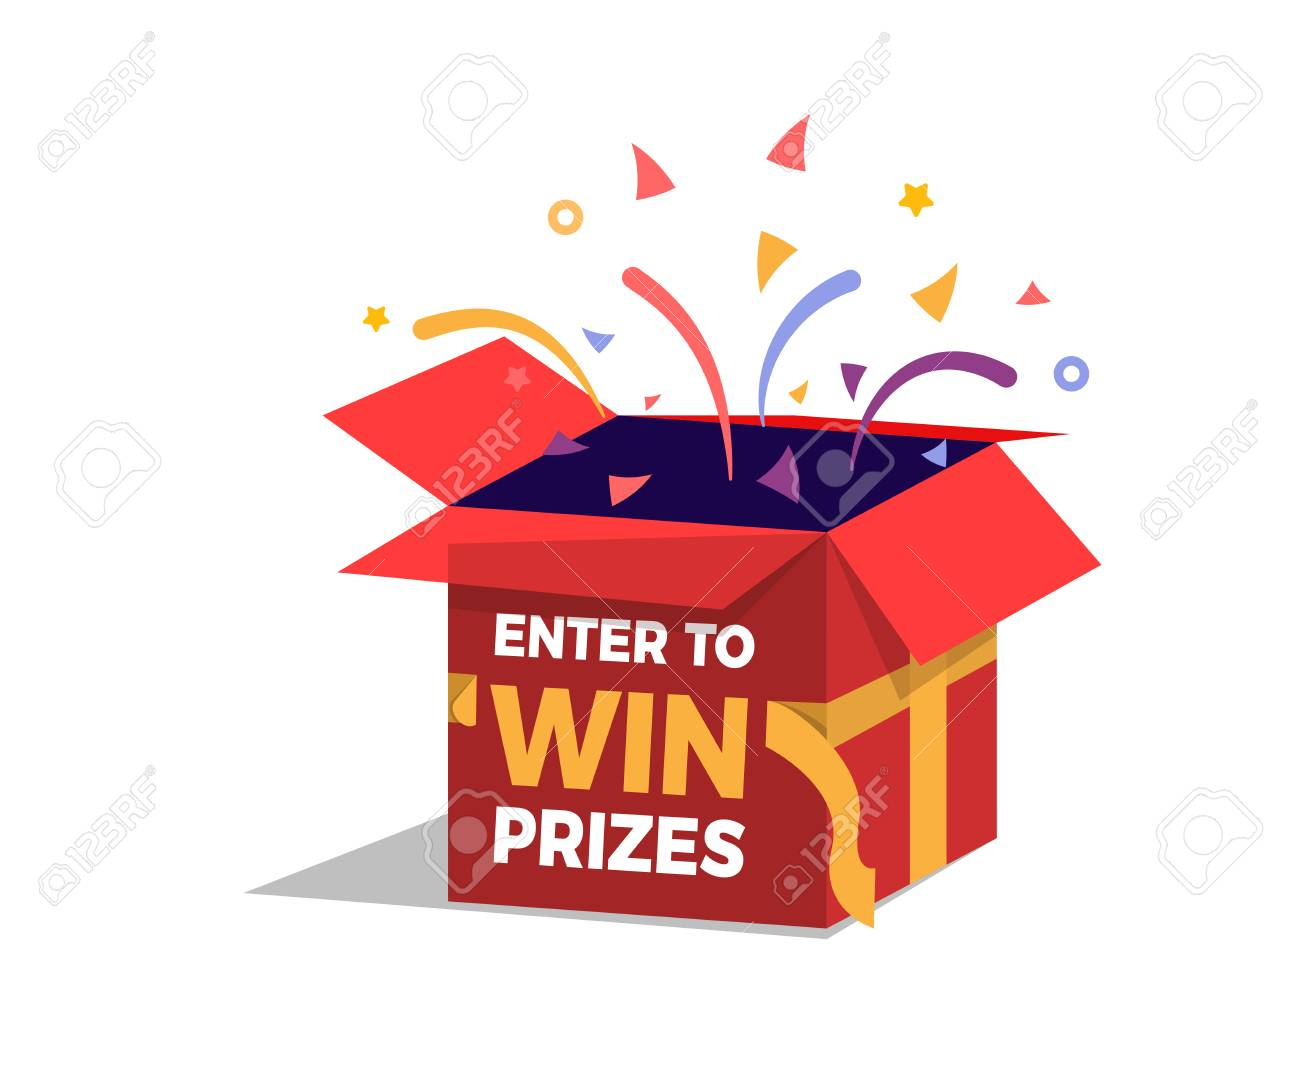 Prize box opening and exploding with fireworks and confetti. Enter to win prizes design. Vector illustration - 97100470